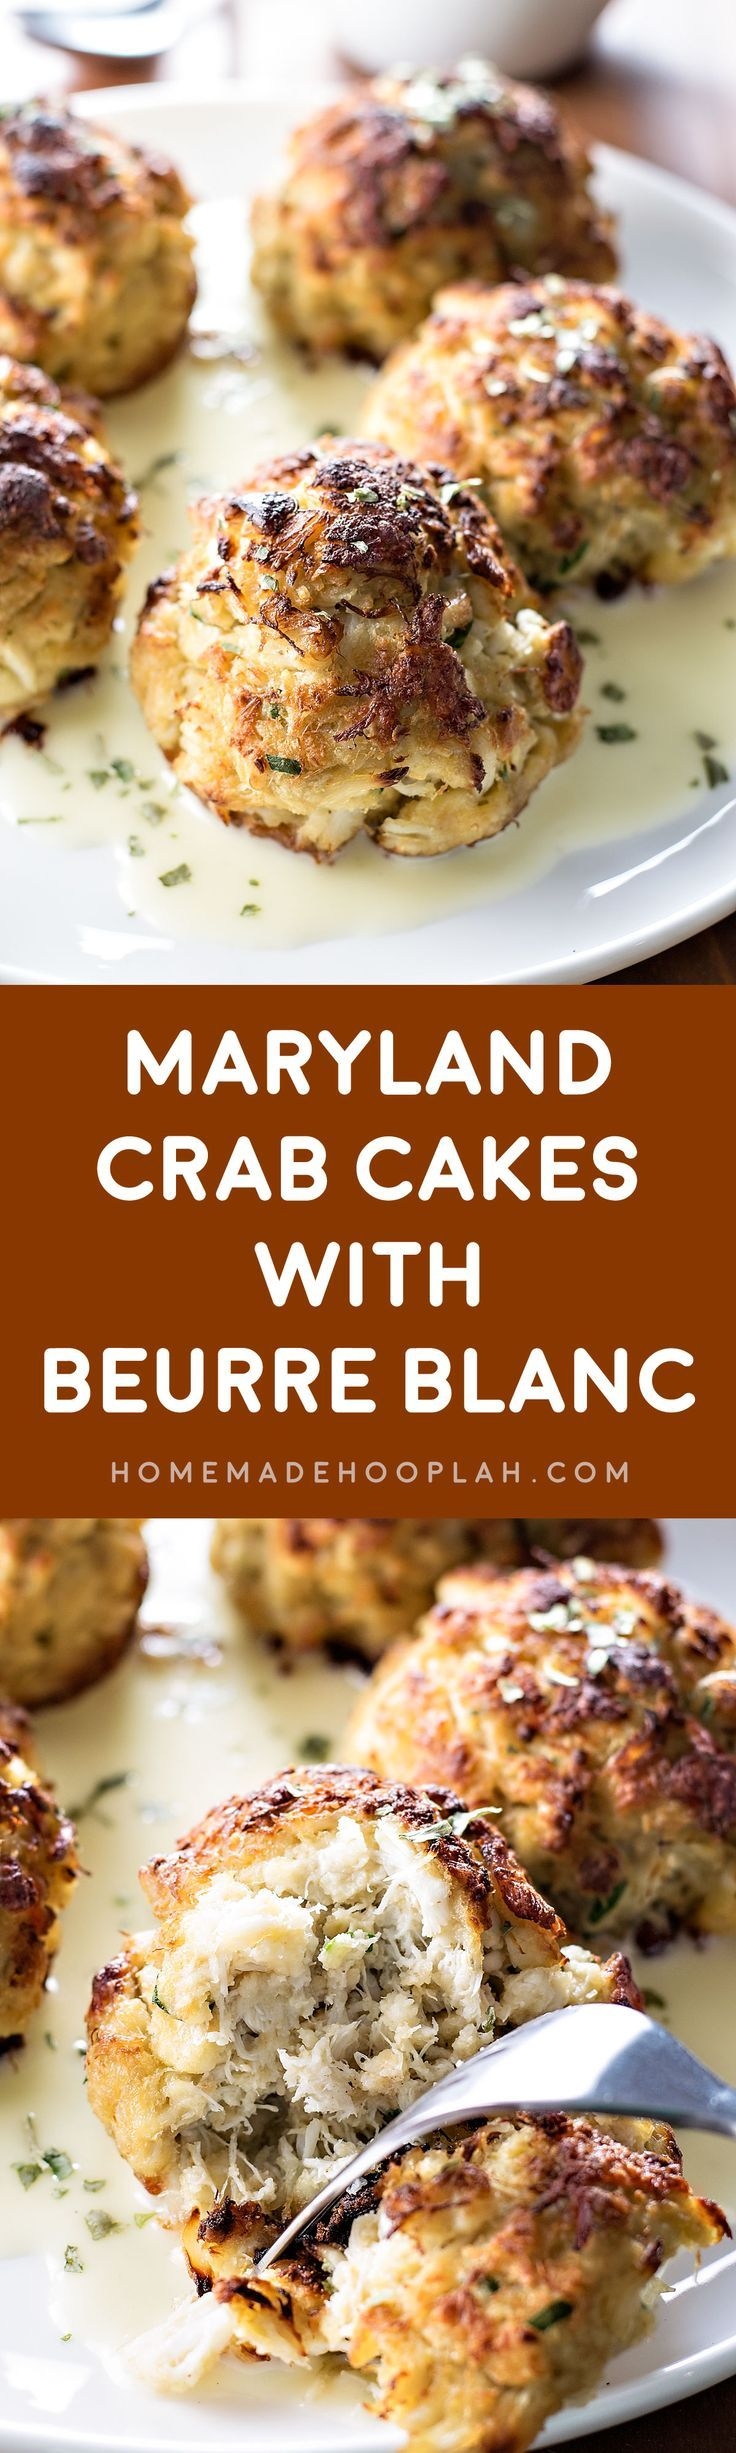 """Maryland Crab Cakes with Berrue Blanc! If you love the """"crab"""" in crab meat, then this is the recipe for you: minimal breading and a light sauce makes the crab meat the star of this dish. 